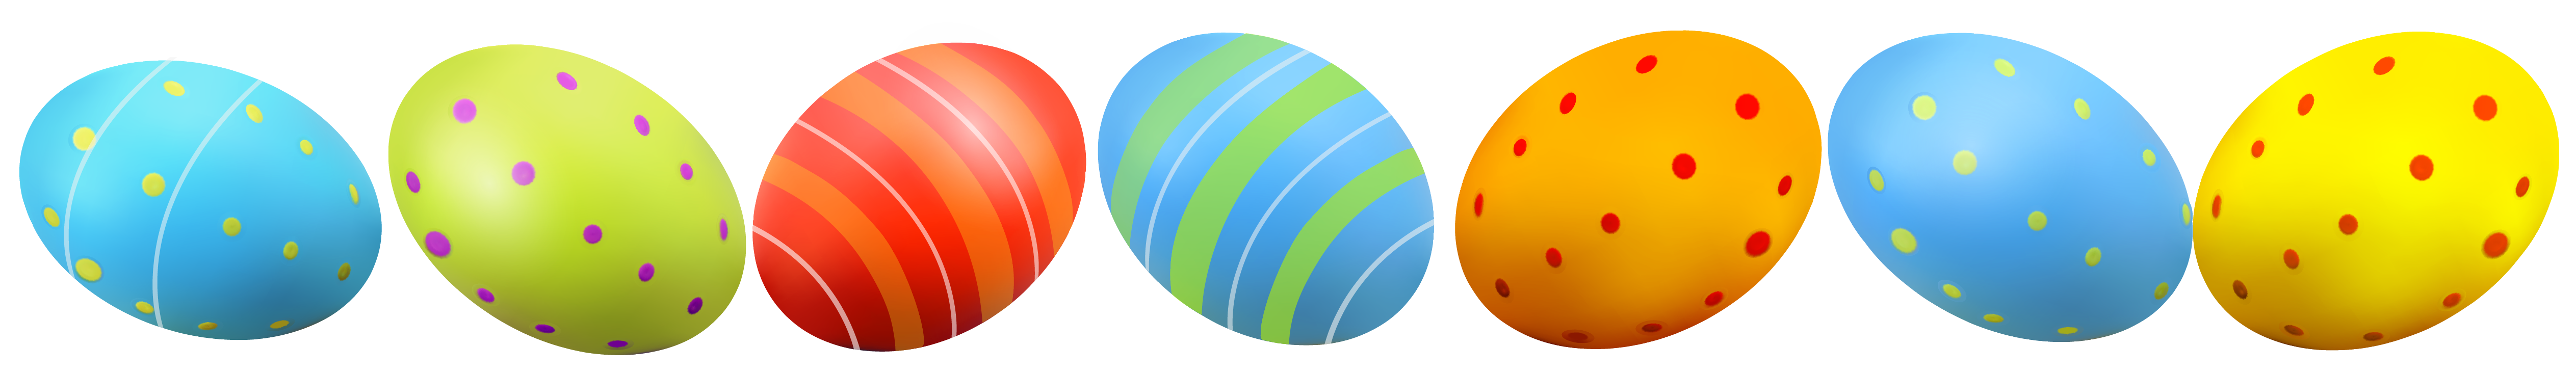 Easter Eggs PNG Transparent Easter Eggs.PNG Images. | PlusPNG